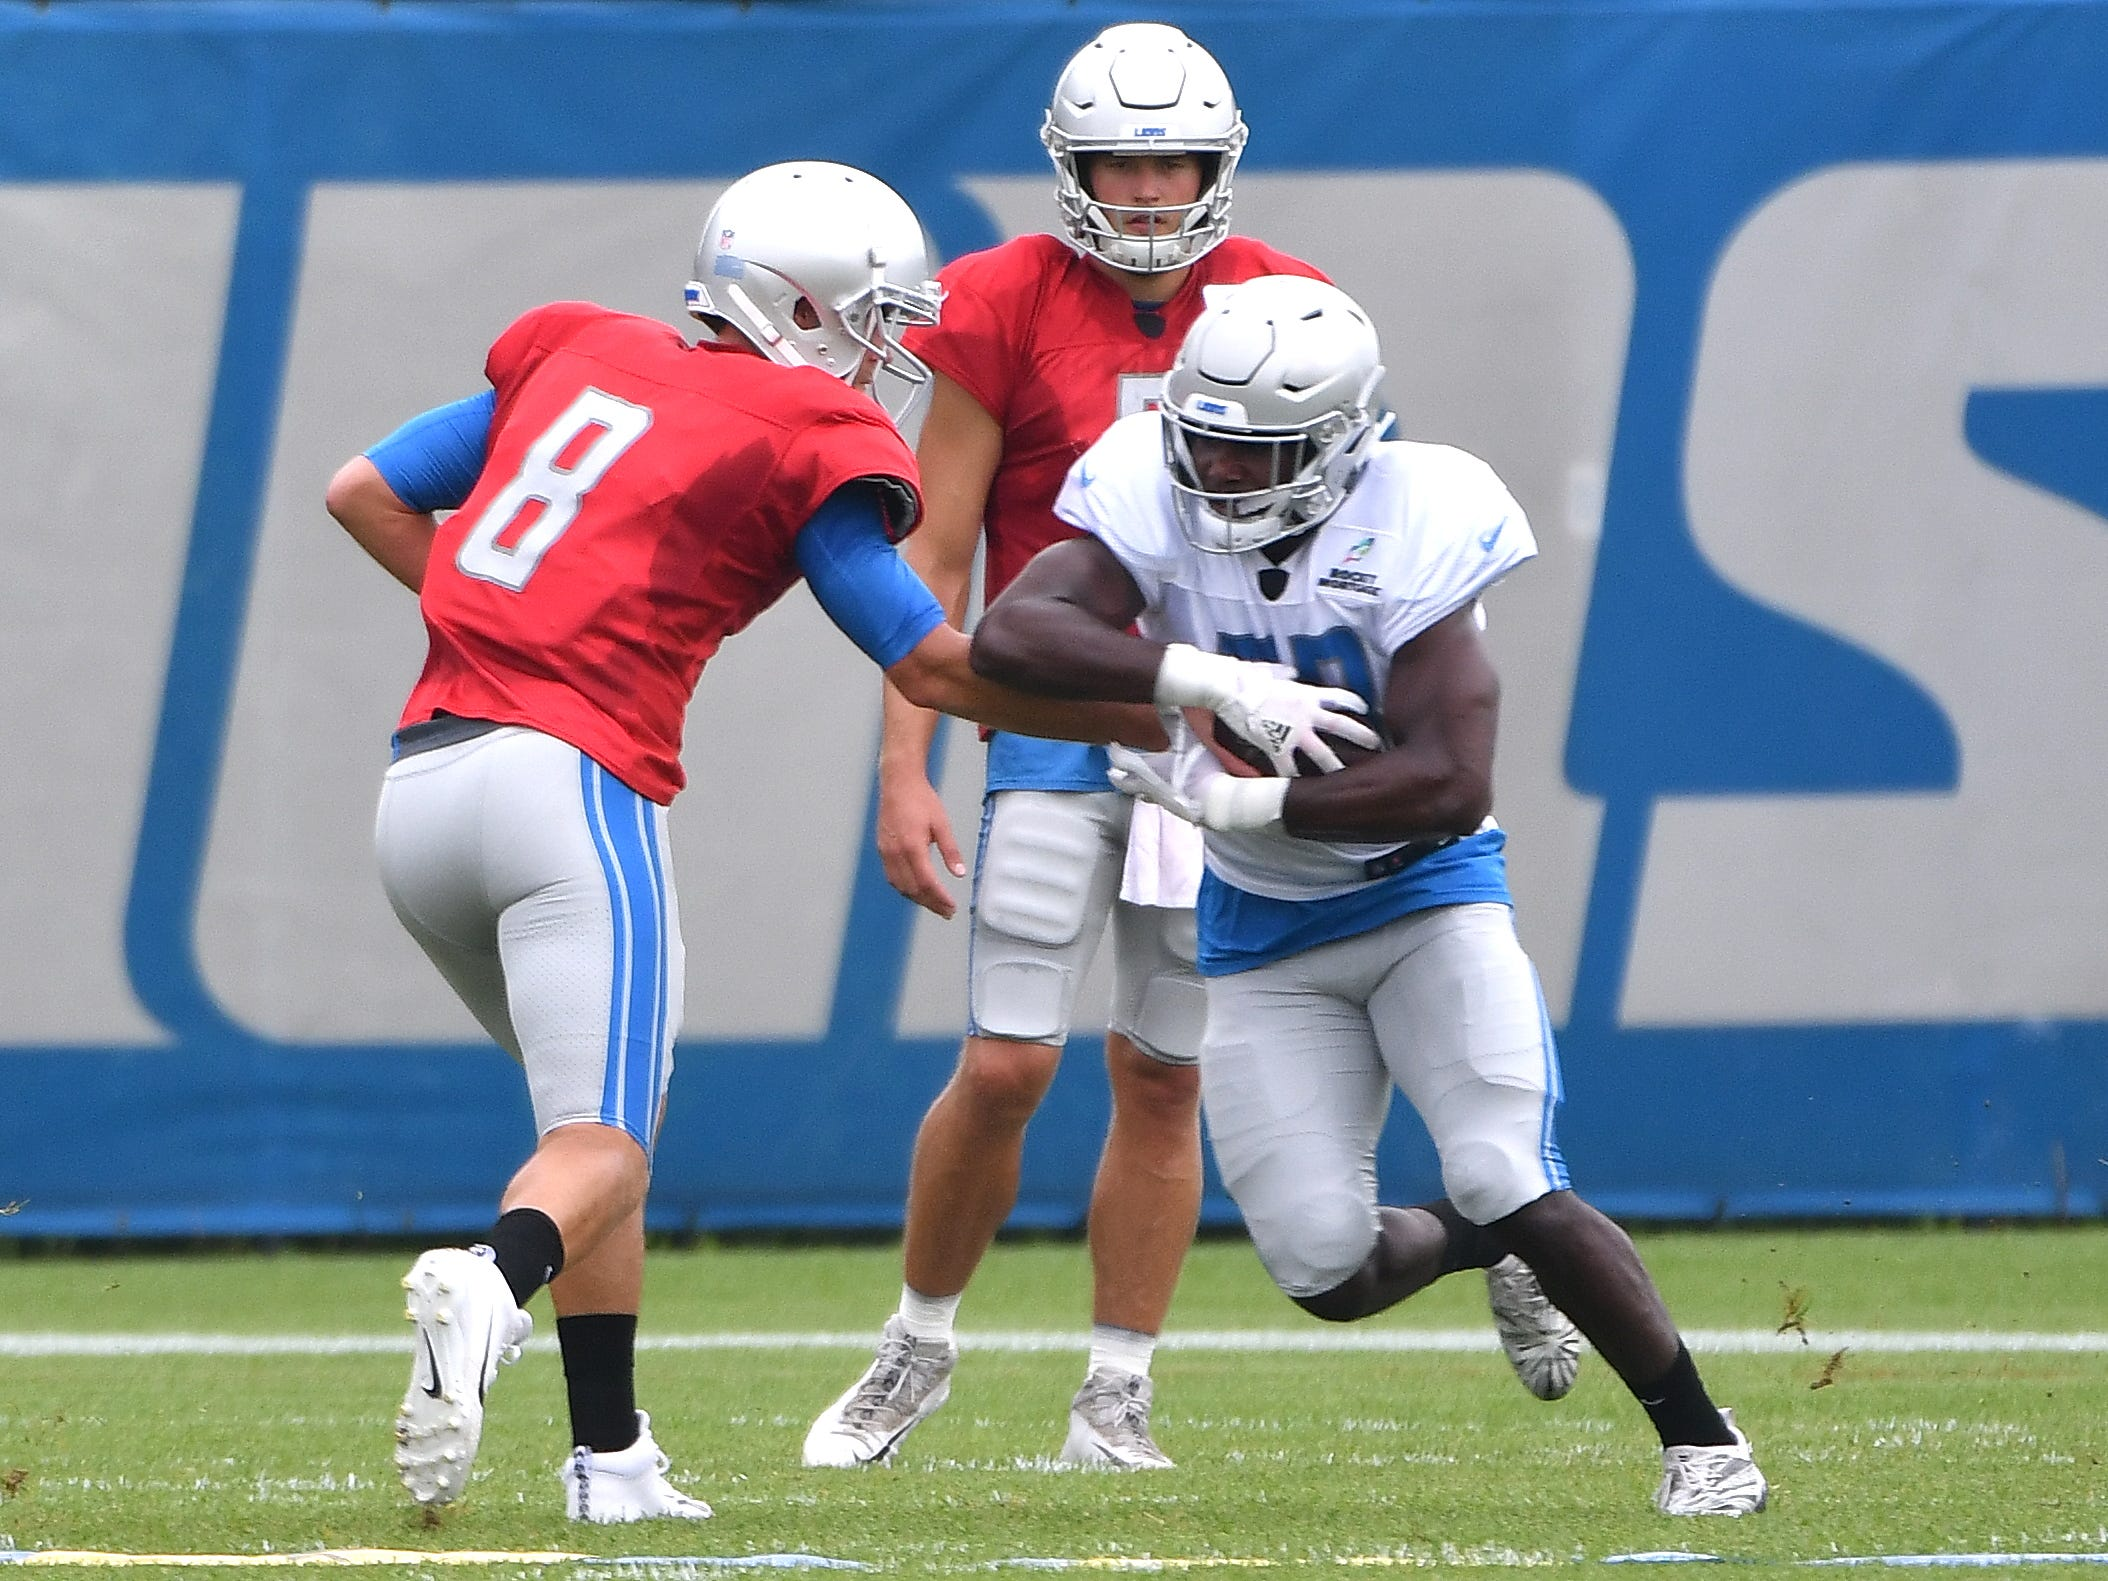 Lions quarterback Matt Cassel hands off to running back Kerryon Johnson.